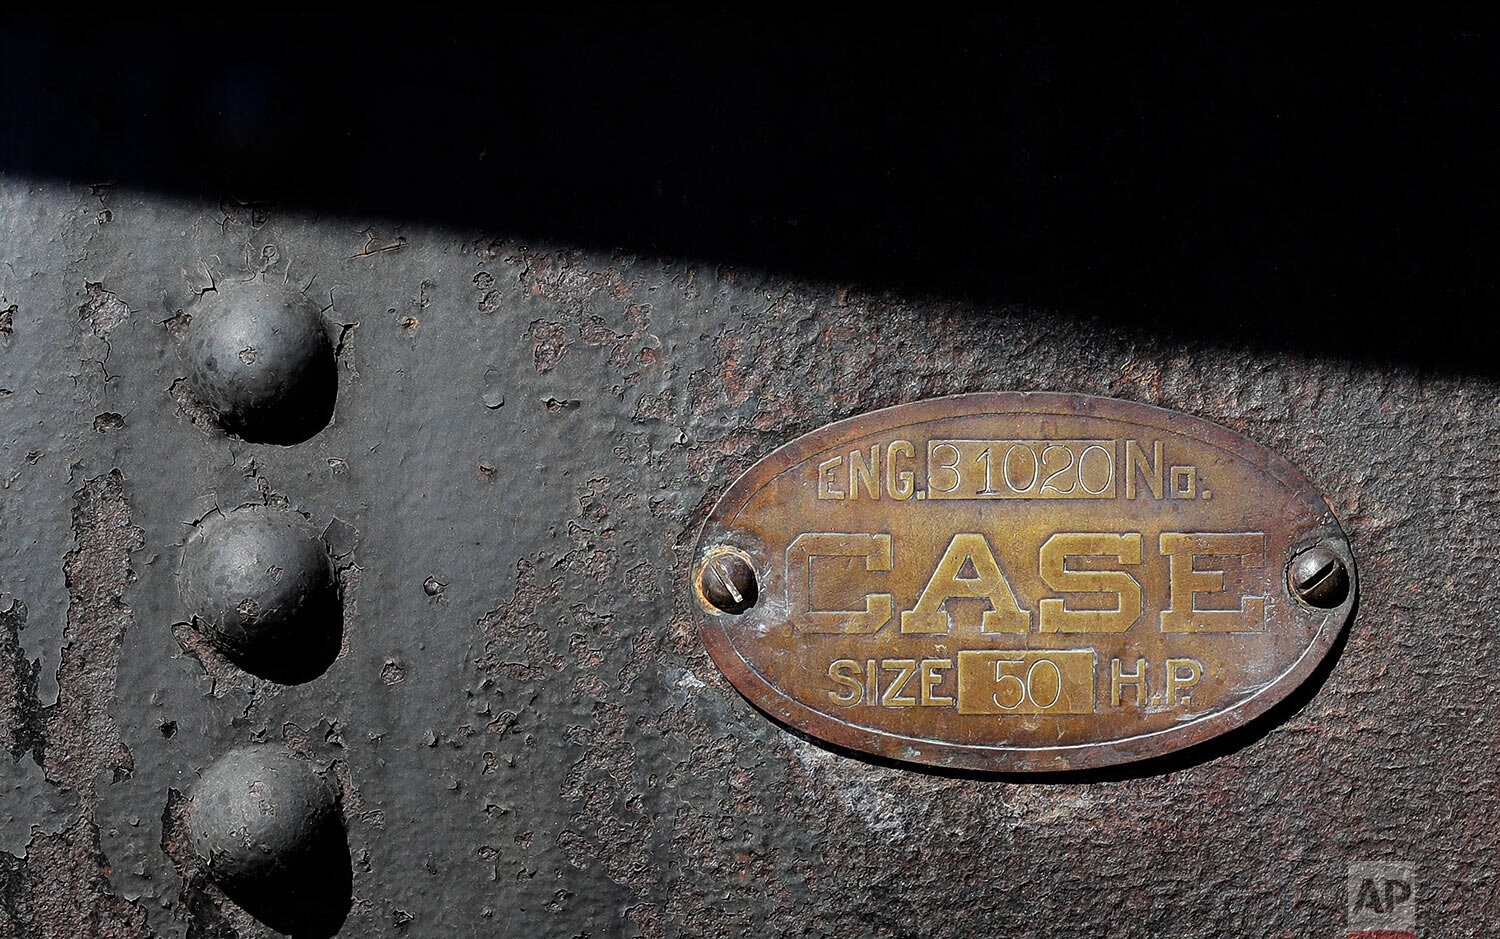 An identification plate on a 100-year-old Case steam traction engine indicates its power capacity at 50 horsepower as the machine is used to drive a stationary grain thresher near Colfax, Wash., Sept. 2, 2019. (AP Photo/Ted S. Warren)